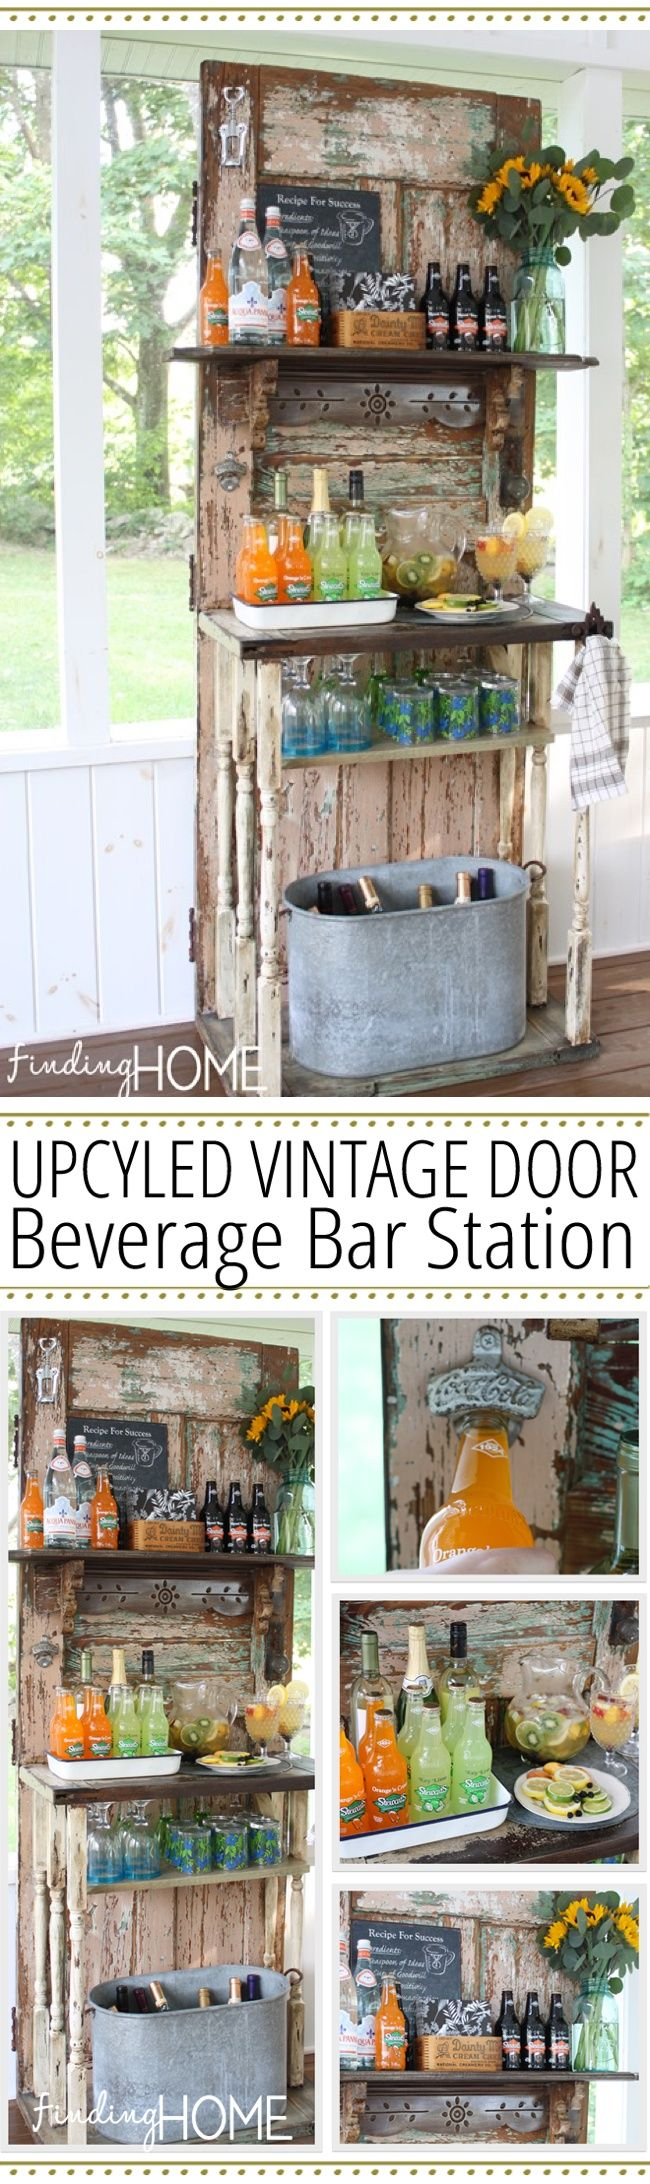 Upcycled Vintage Door Beverage Bar Station